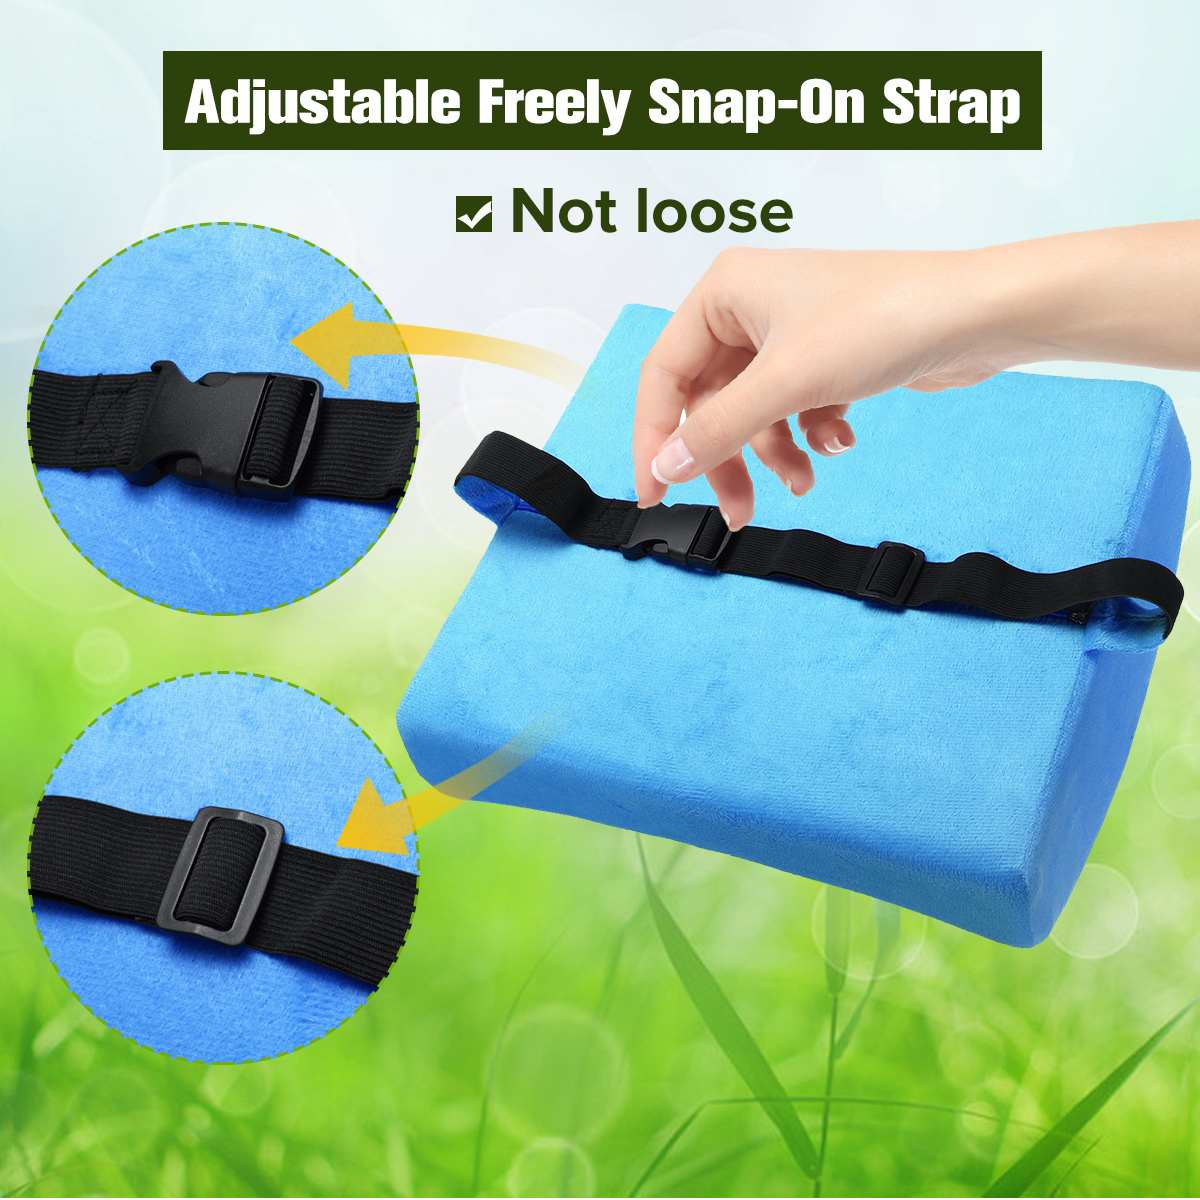 6 Color Lumbar Pillows Made Of Soft Foam For Car Seat To Support And Relieve Back Pain 7